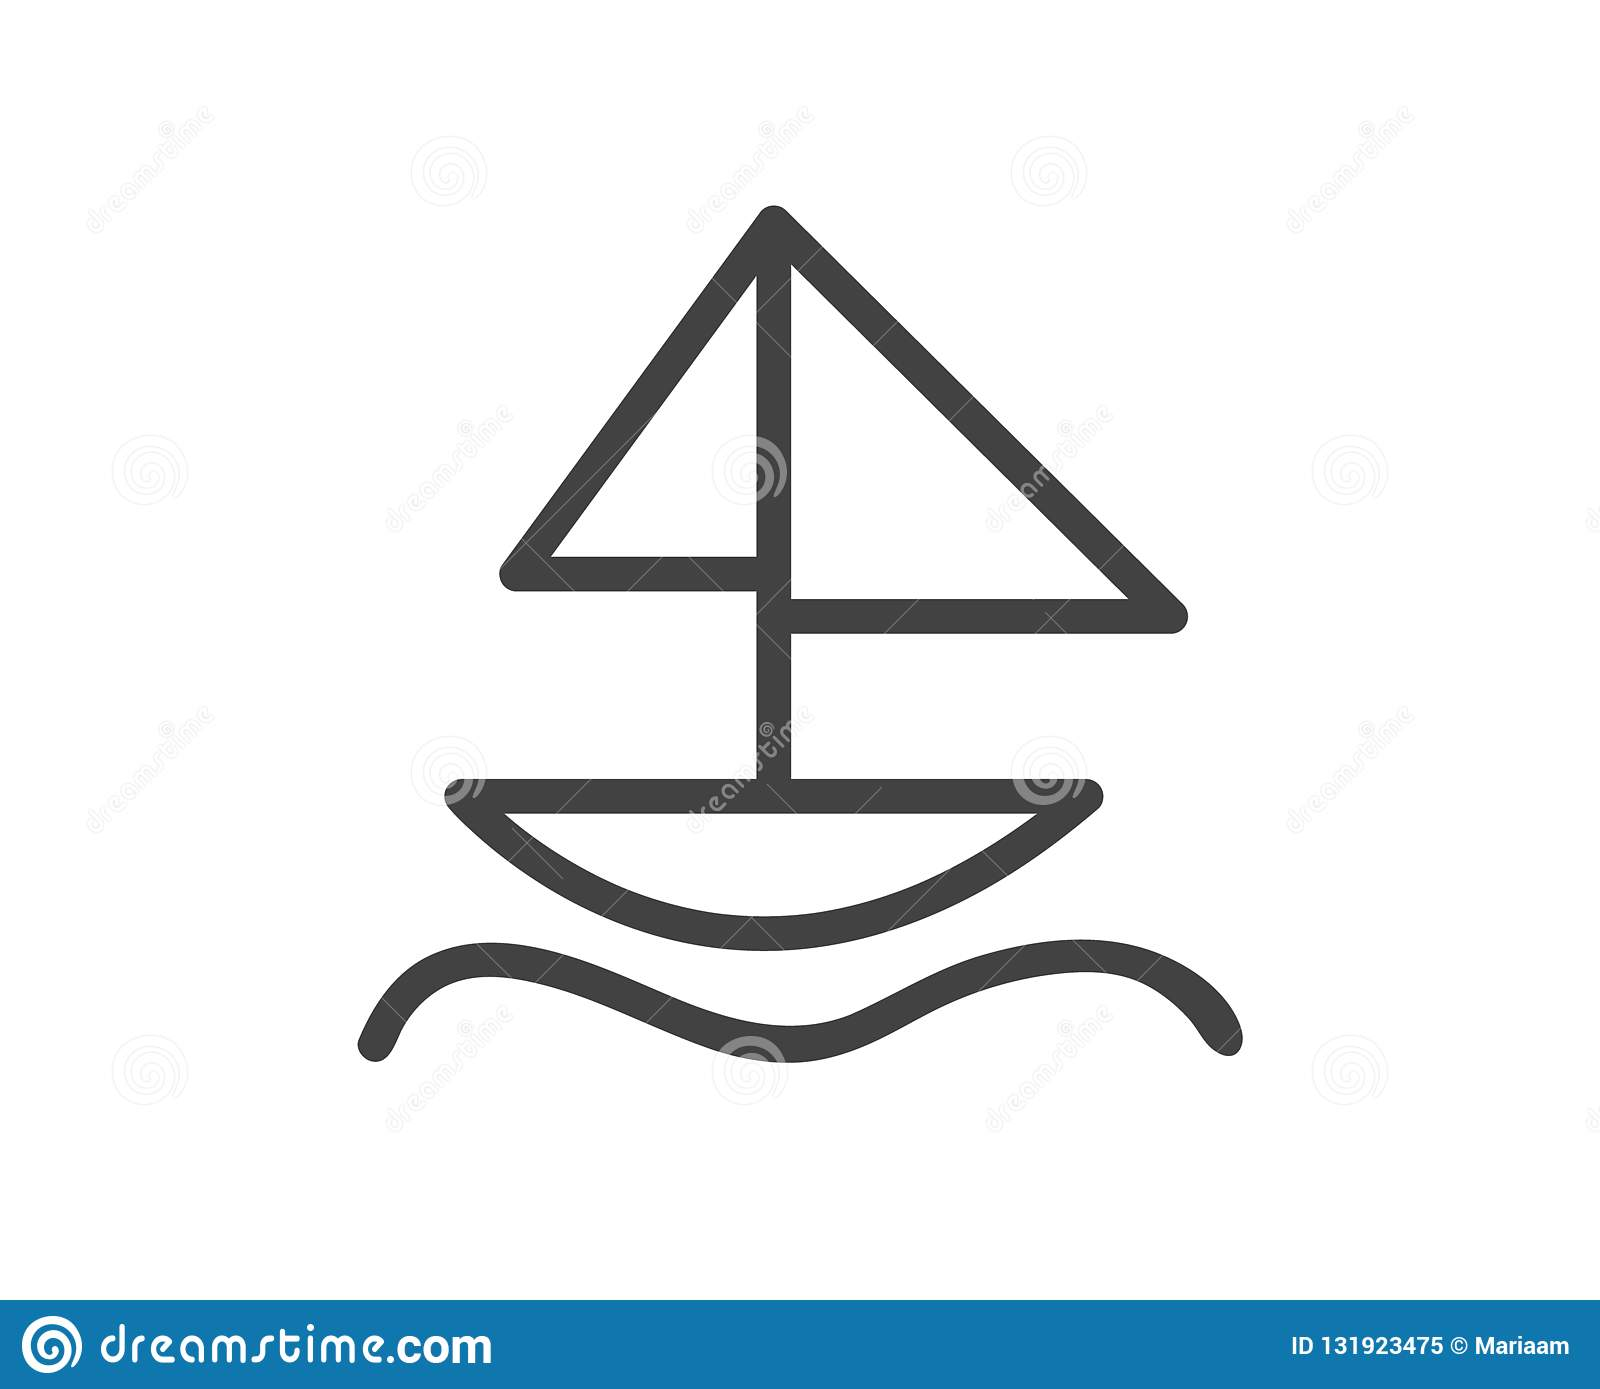 Sailboat line out icon in black and white pictograph with sailing boat isolated over white